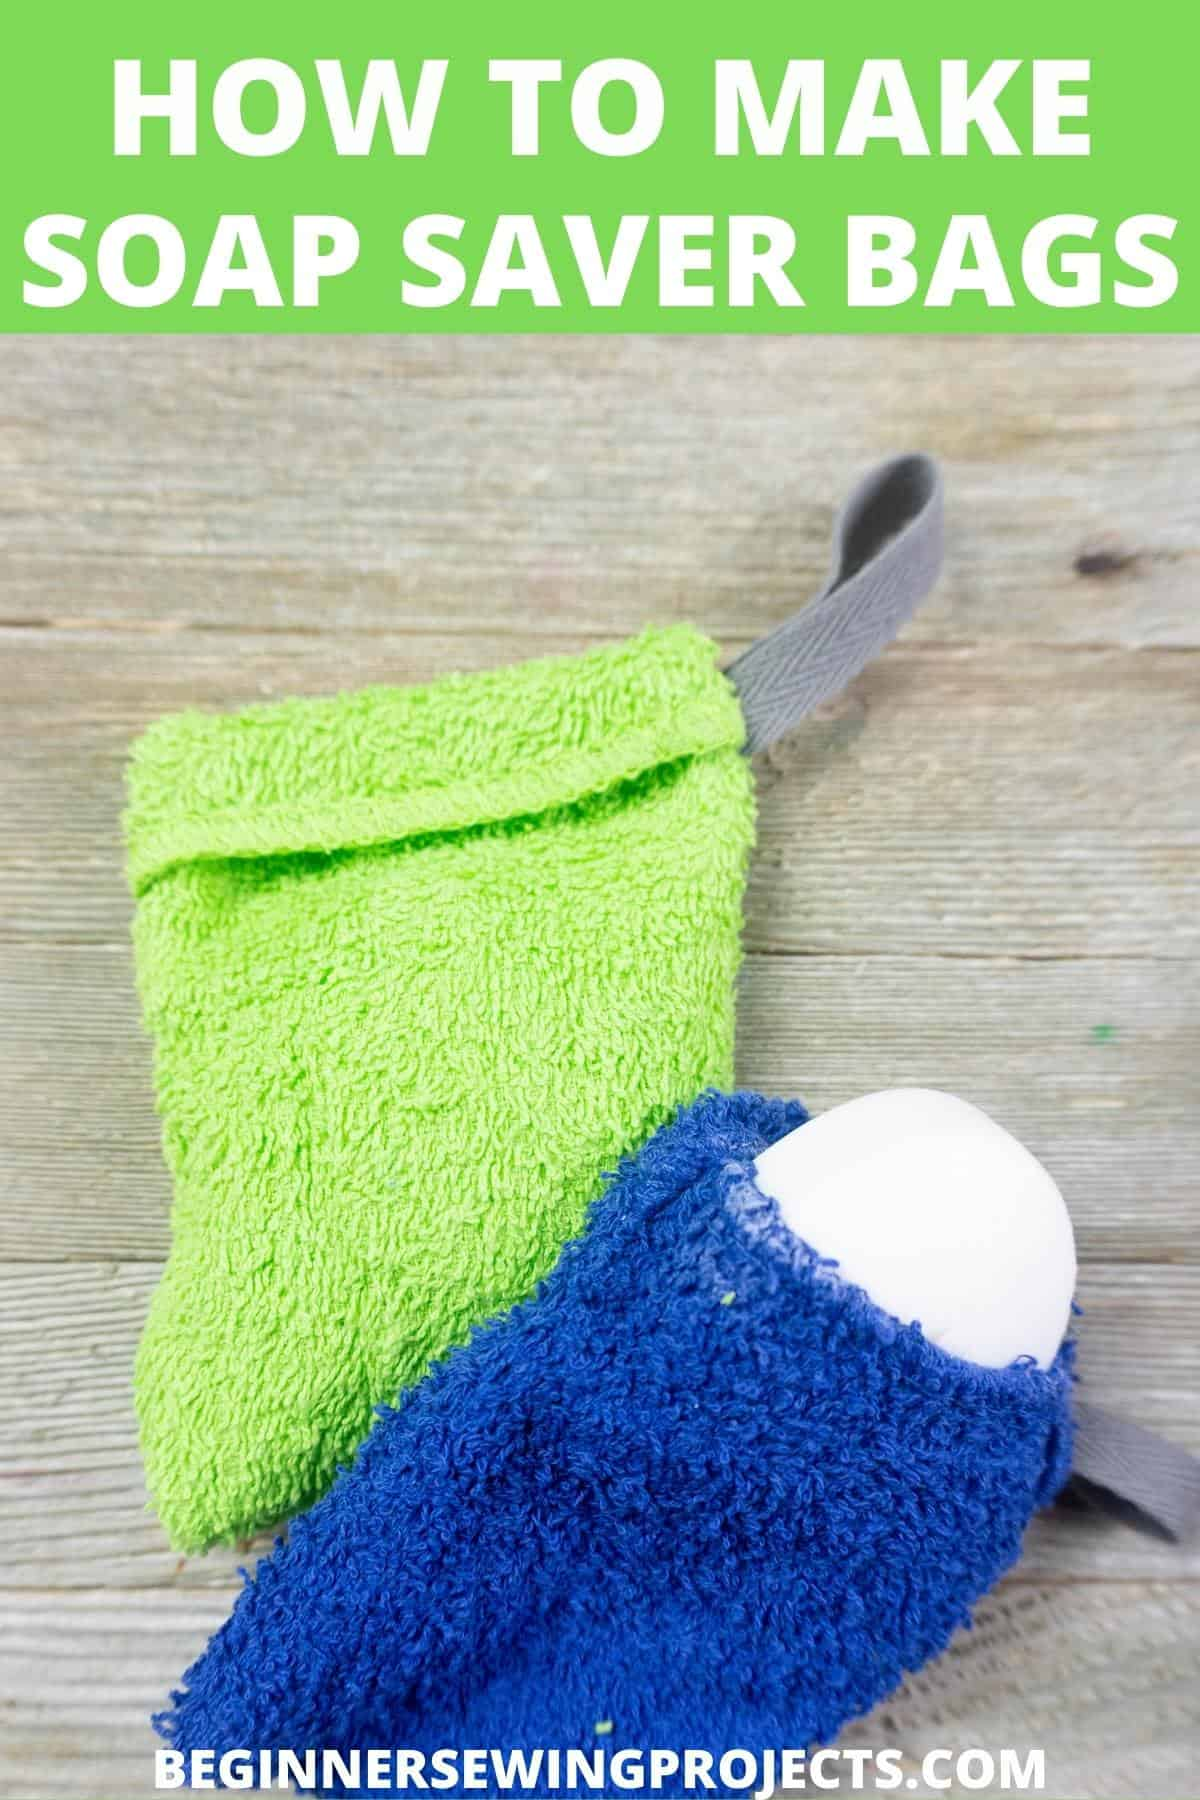 How To Make Soap Saver Bags